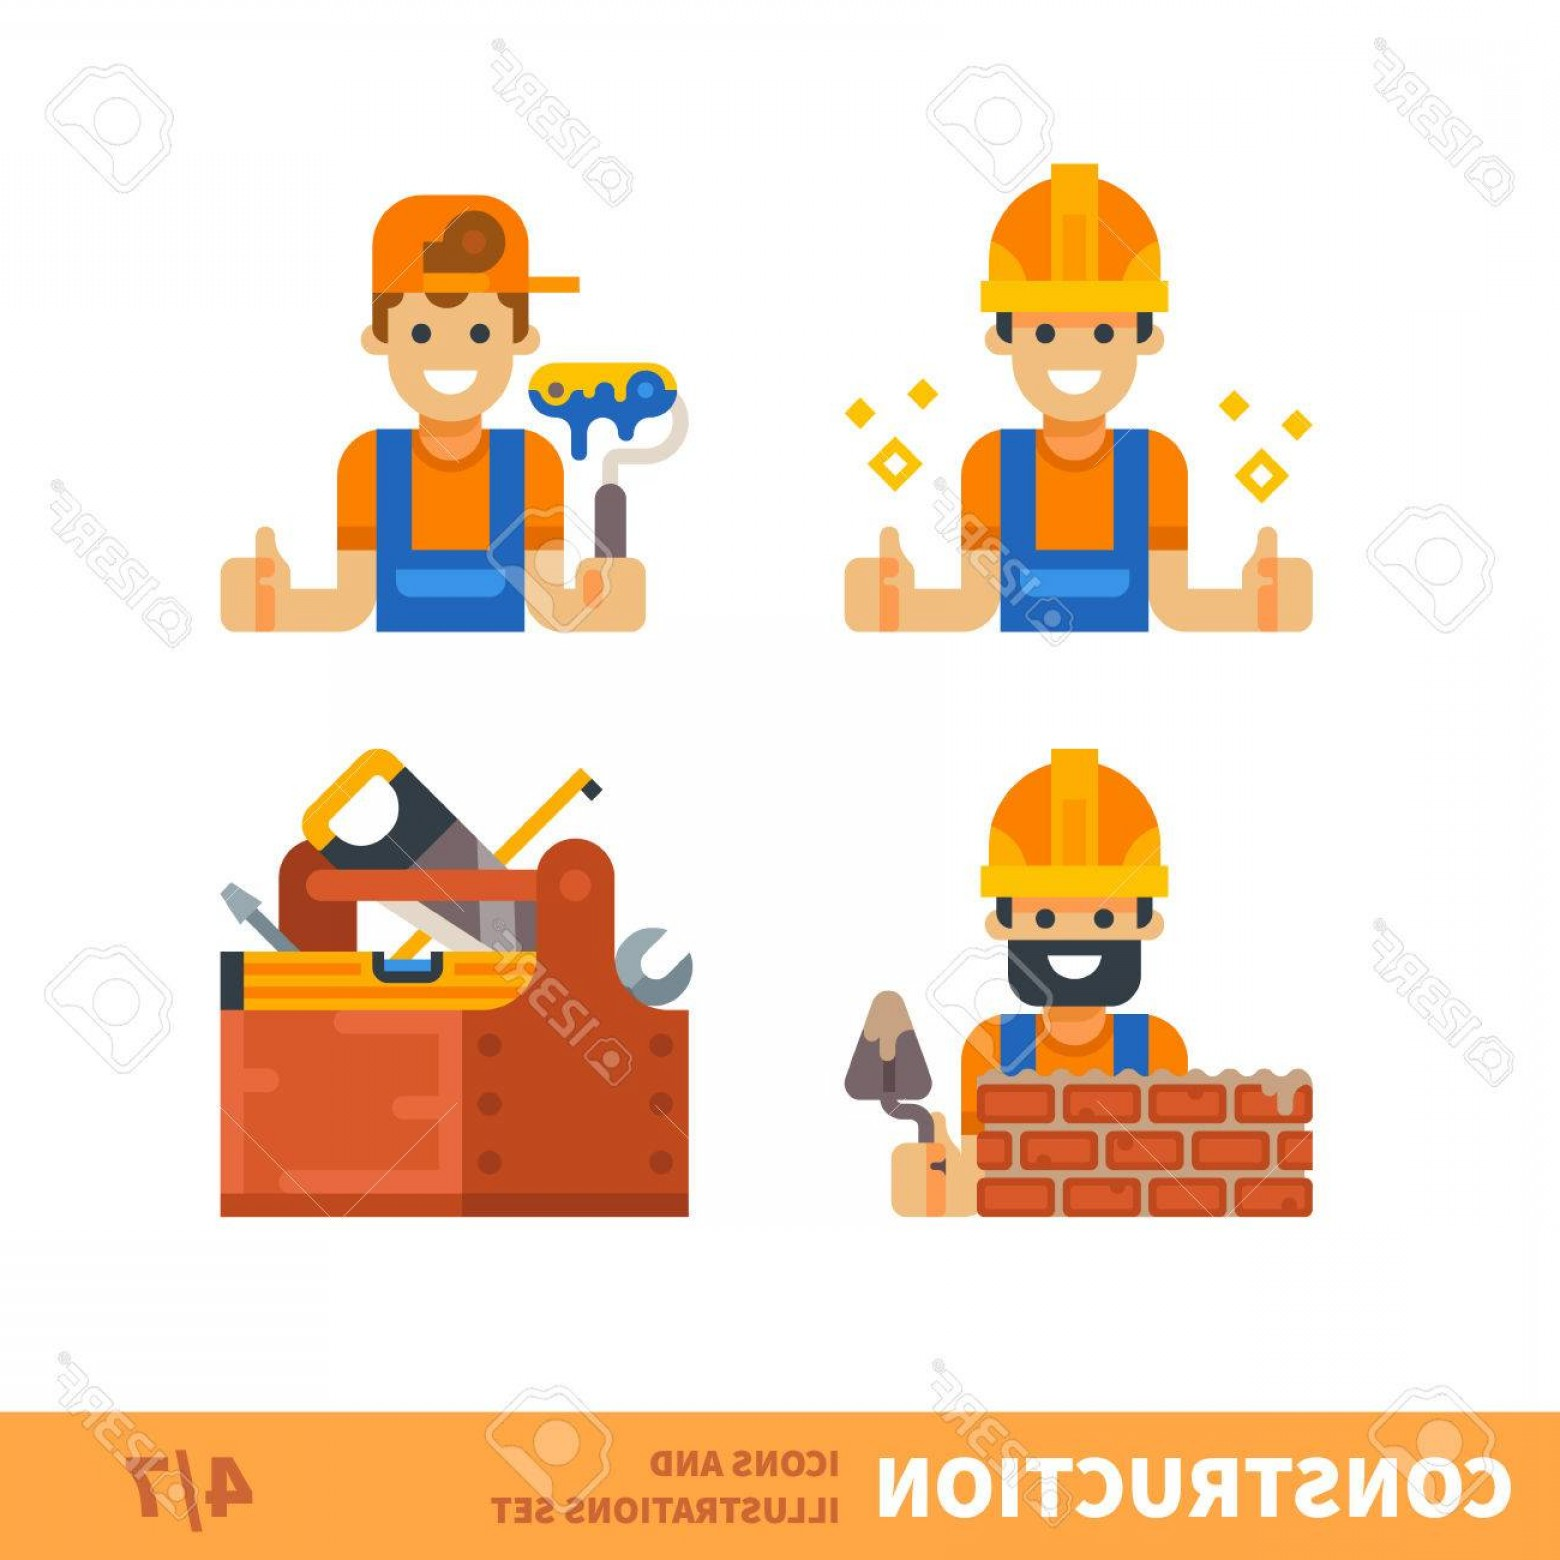 General Contractor Vector: Photostock Vector Construction Set Work For Builder Or Foreman Painting Building Bricklaying Tools For Construction An